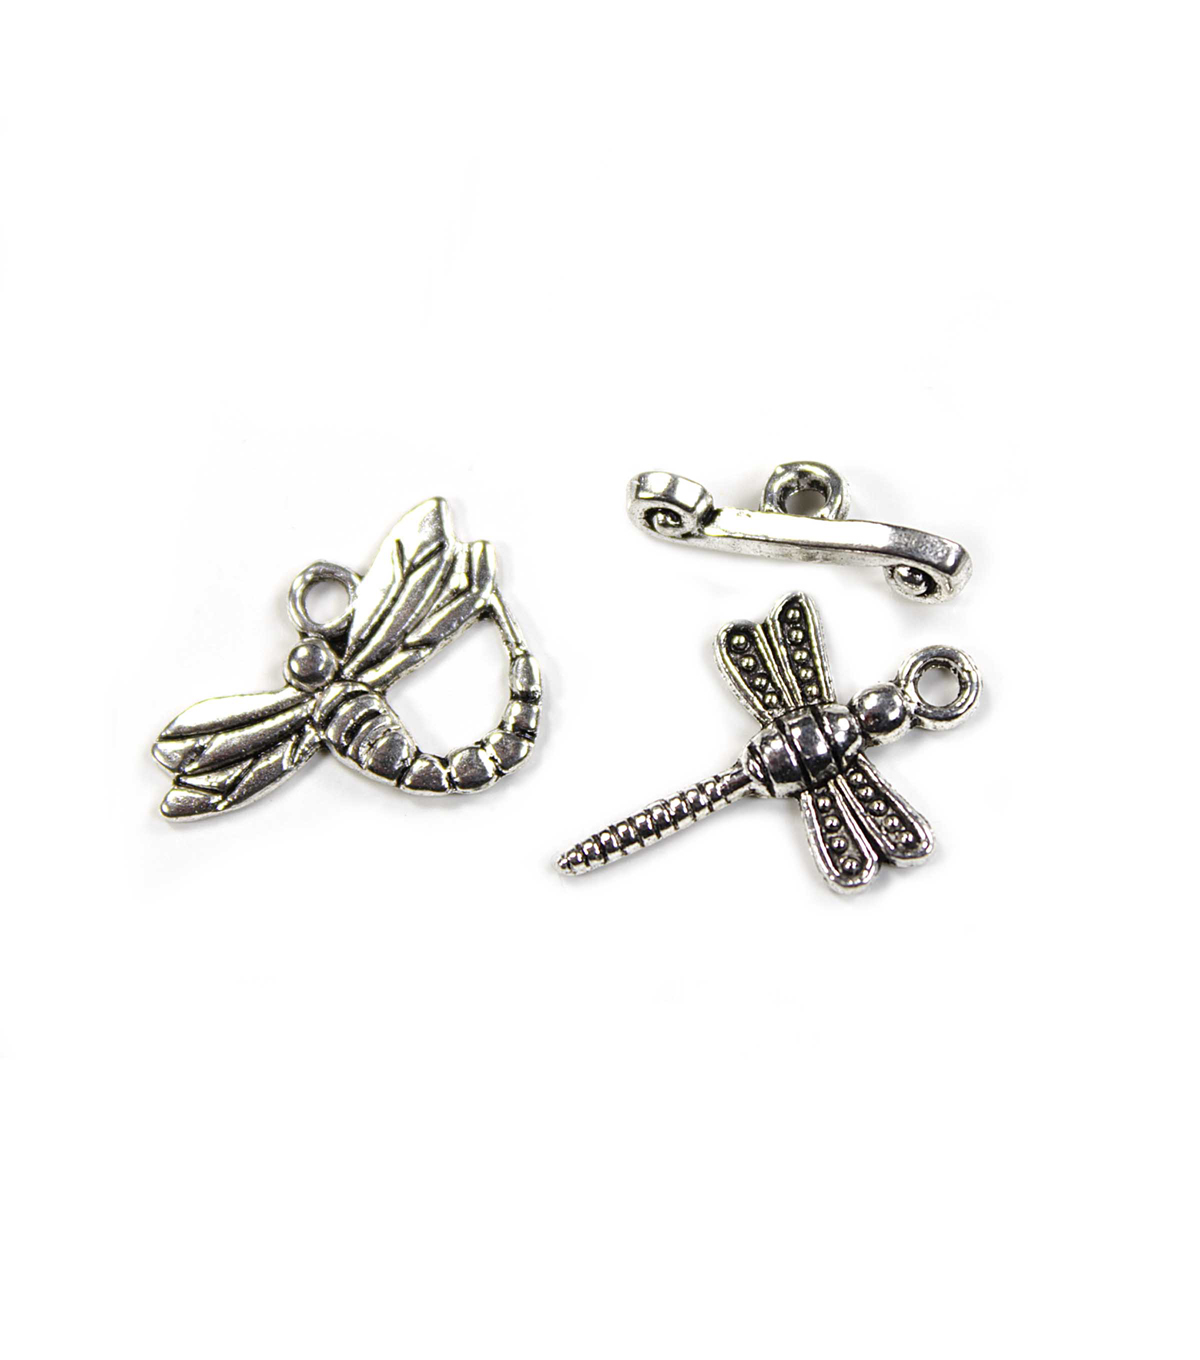 Blue Moon Findings Clasp Metal Toggle Dragonfly Charm Antique Silver